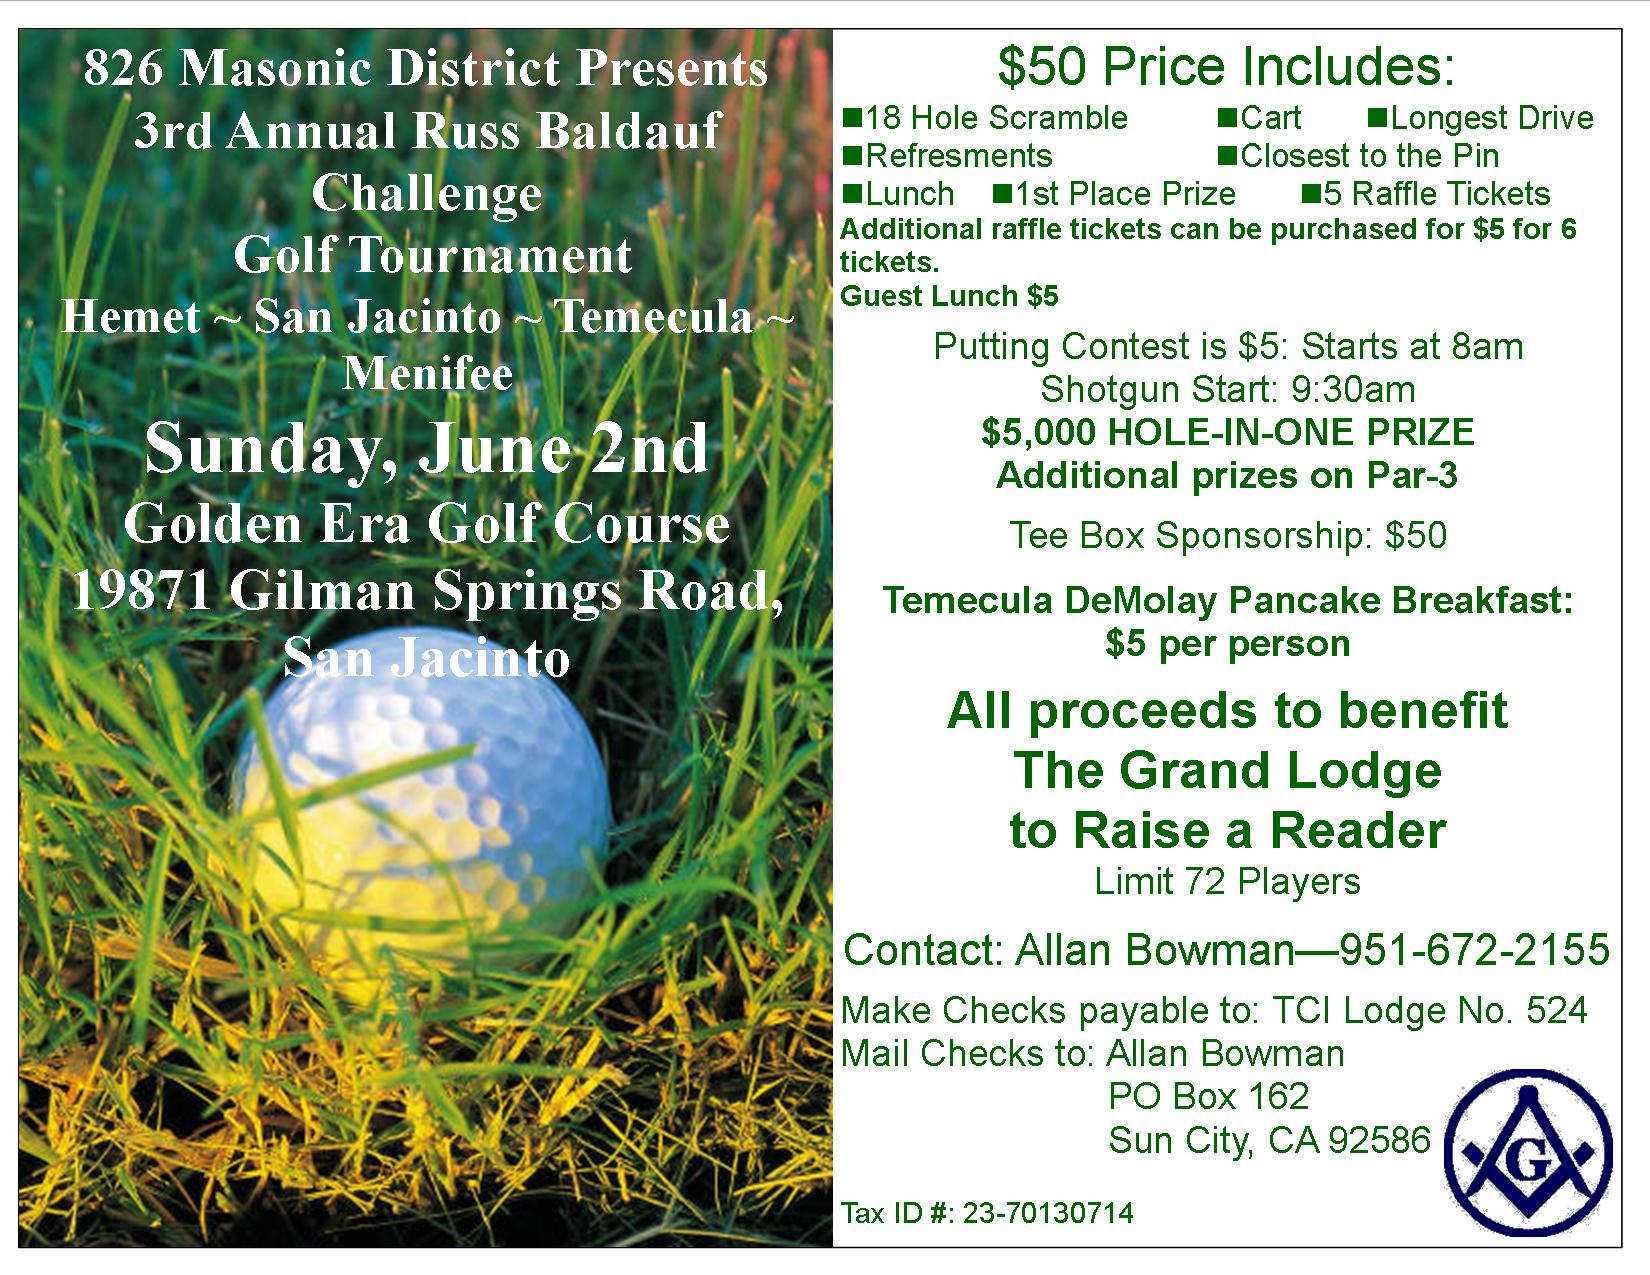 Masonic 3rd Annual 826 Masonic District Golf Tournament (1)